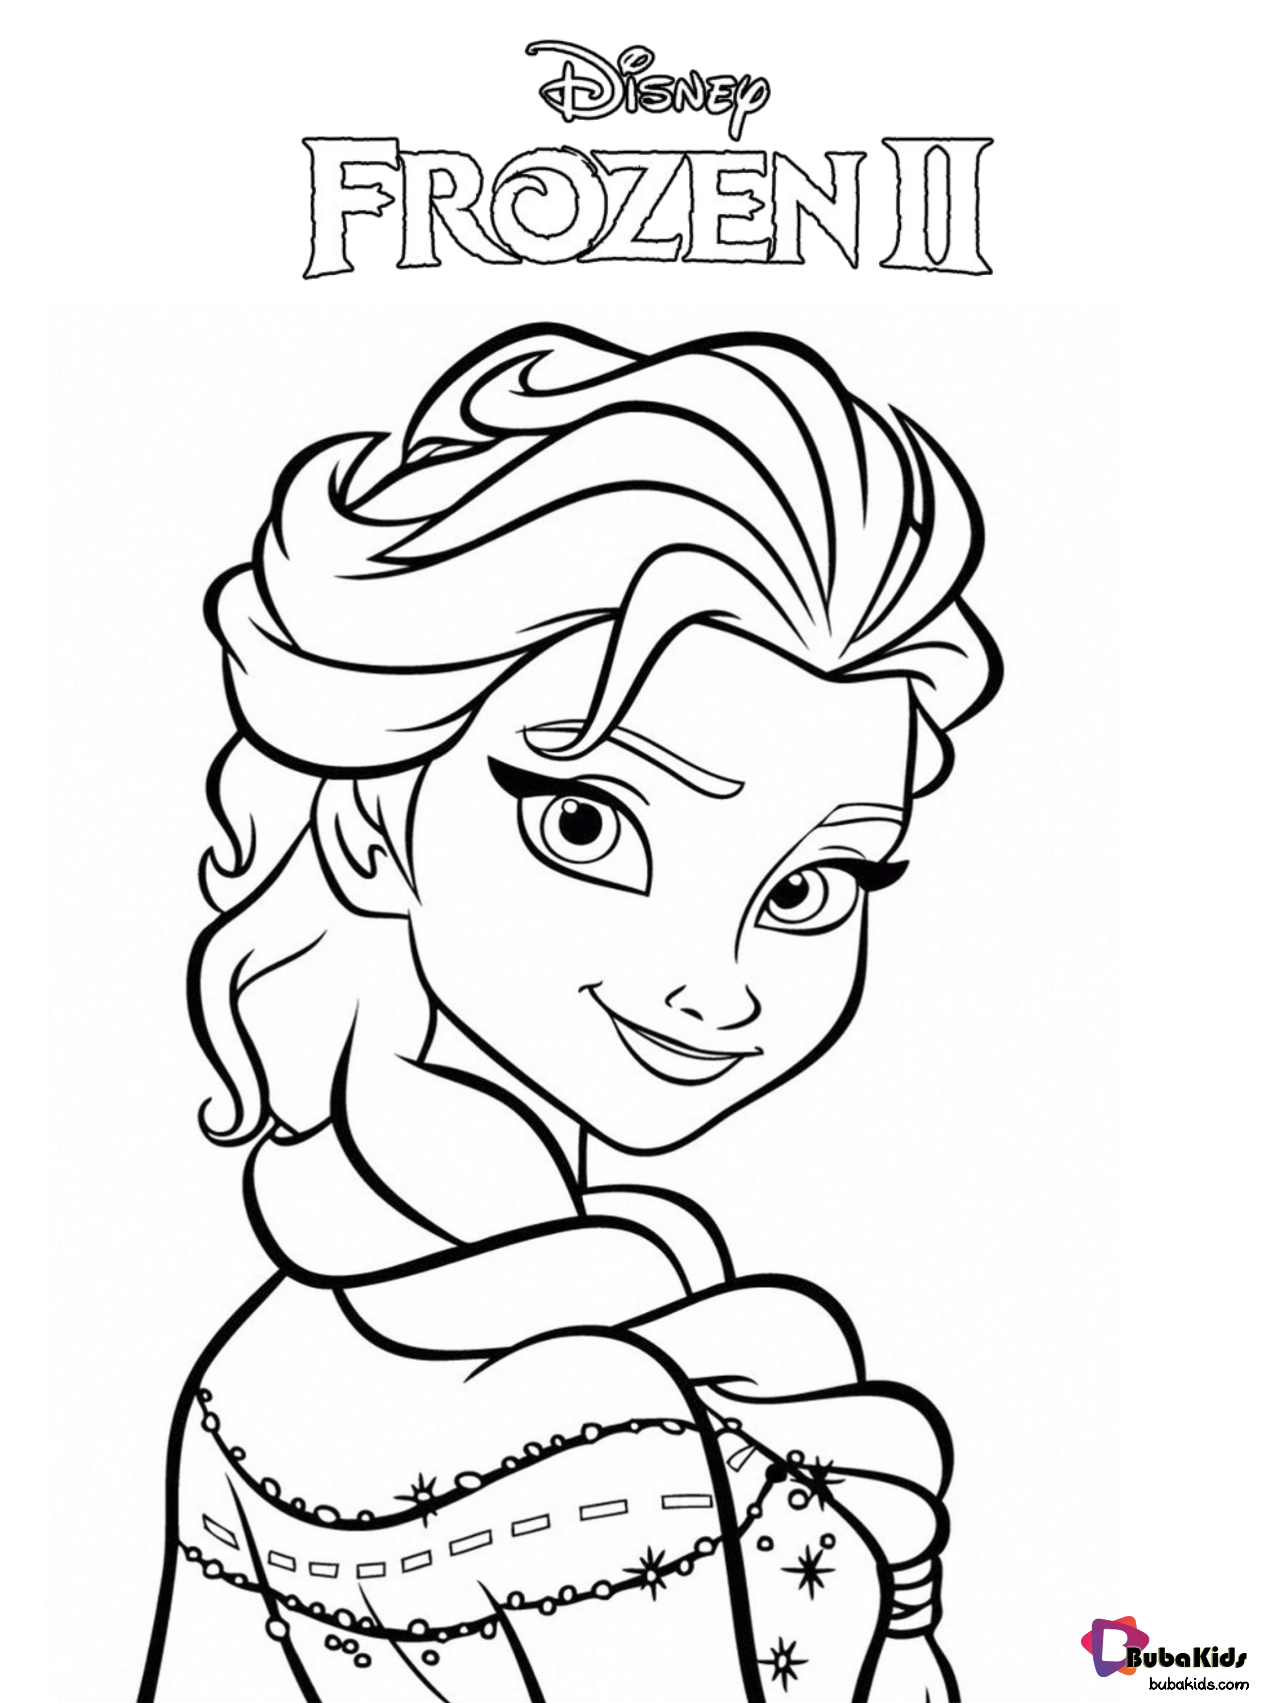 Free download and printable Frozen 2 coloring page. Elsa